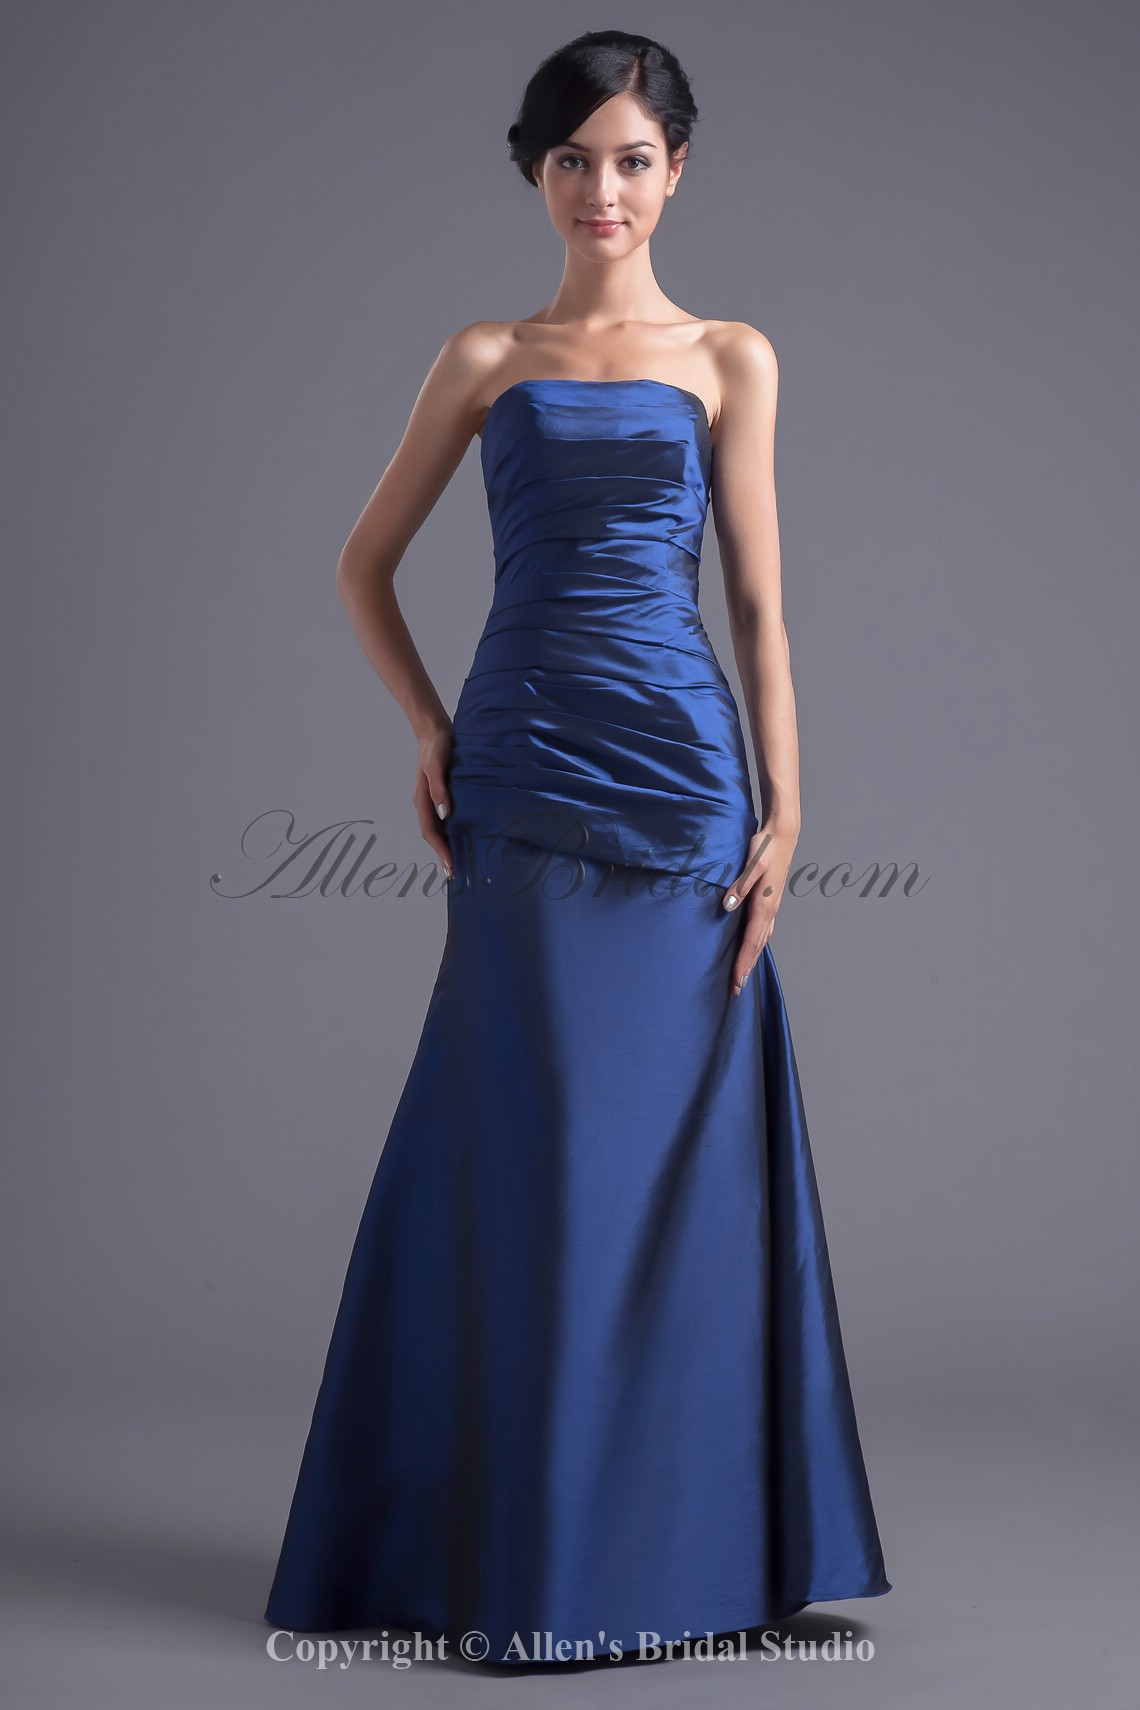 /13-97/taffeta-straless-neckline-a-line-floor-length-directionally-ruched-prom-dress.jpg